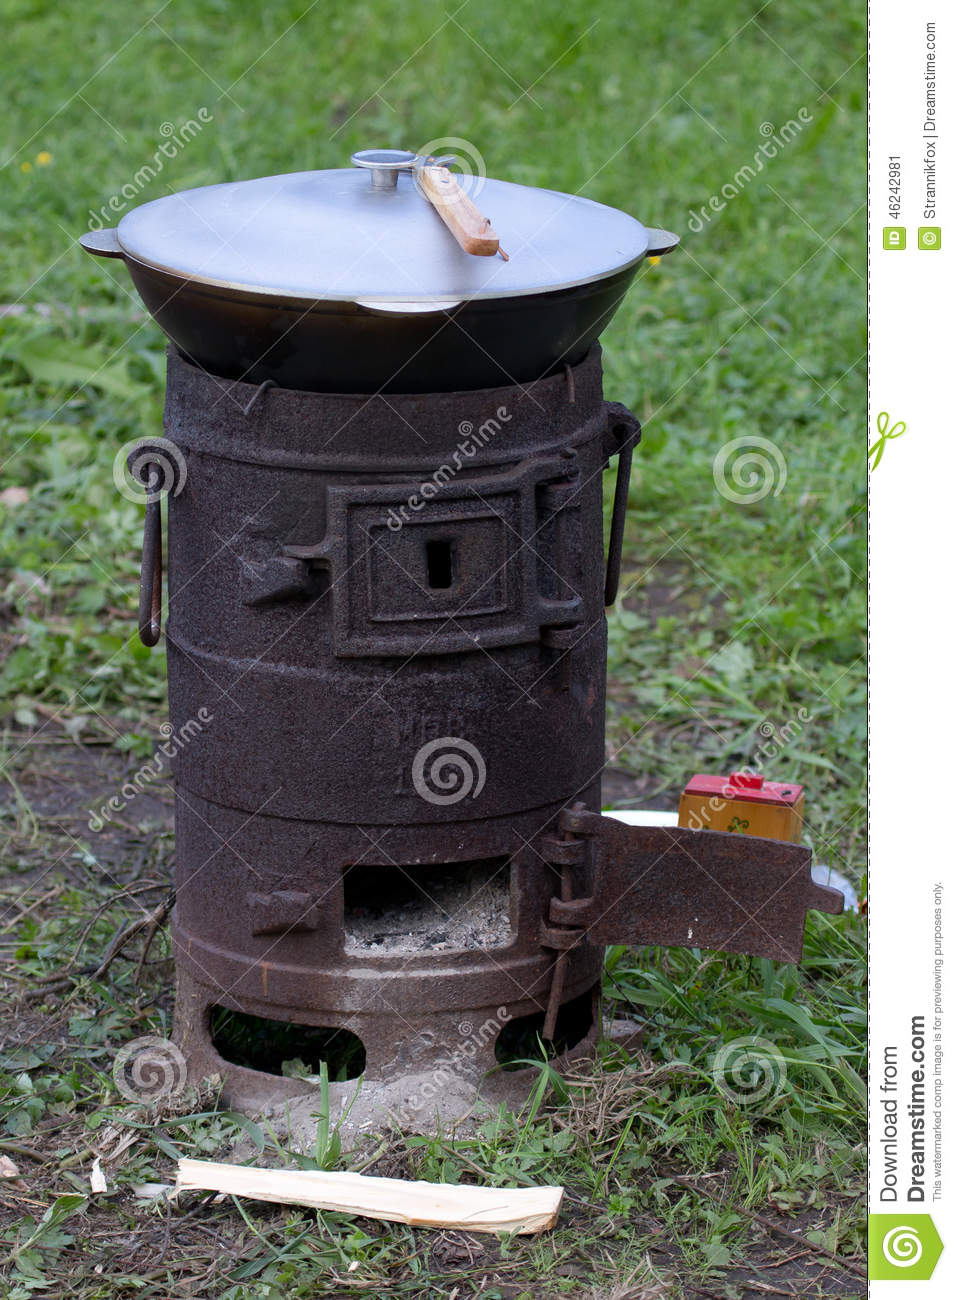 Outdoor Cast Iron Stove With A Bowler Stock Image Image